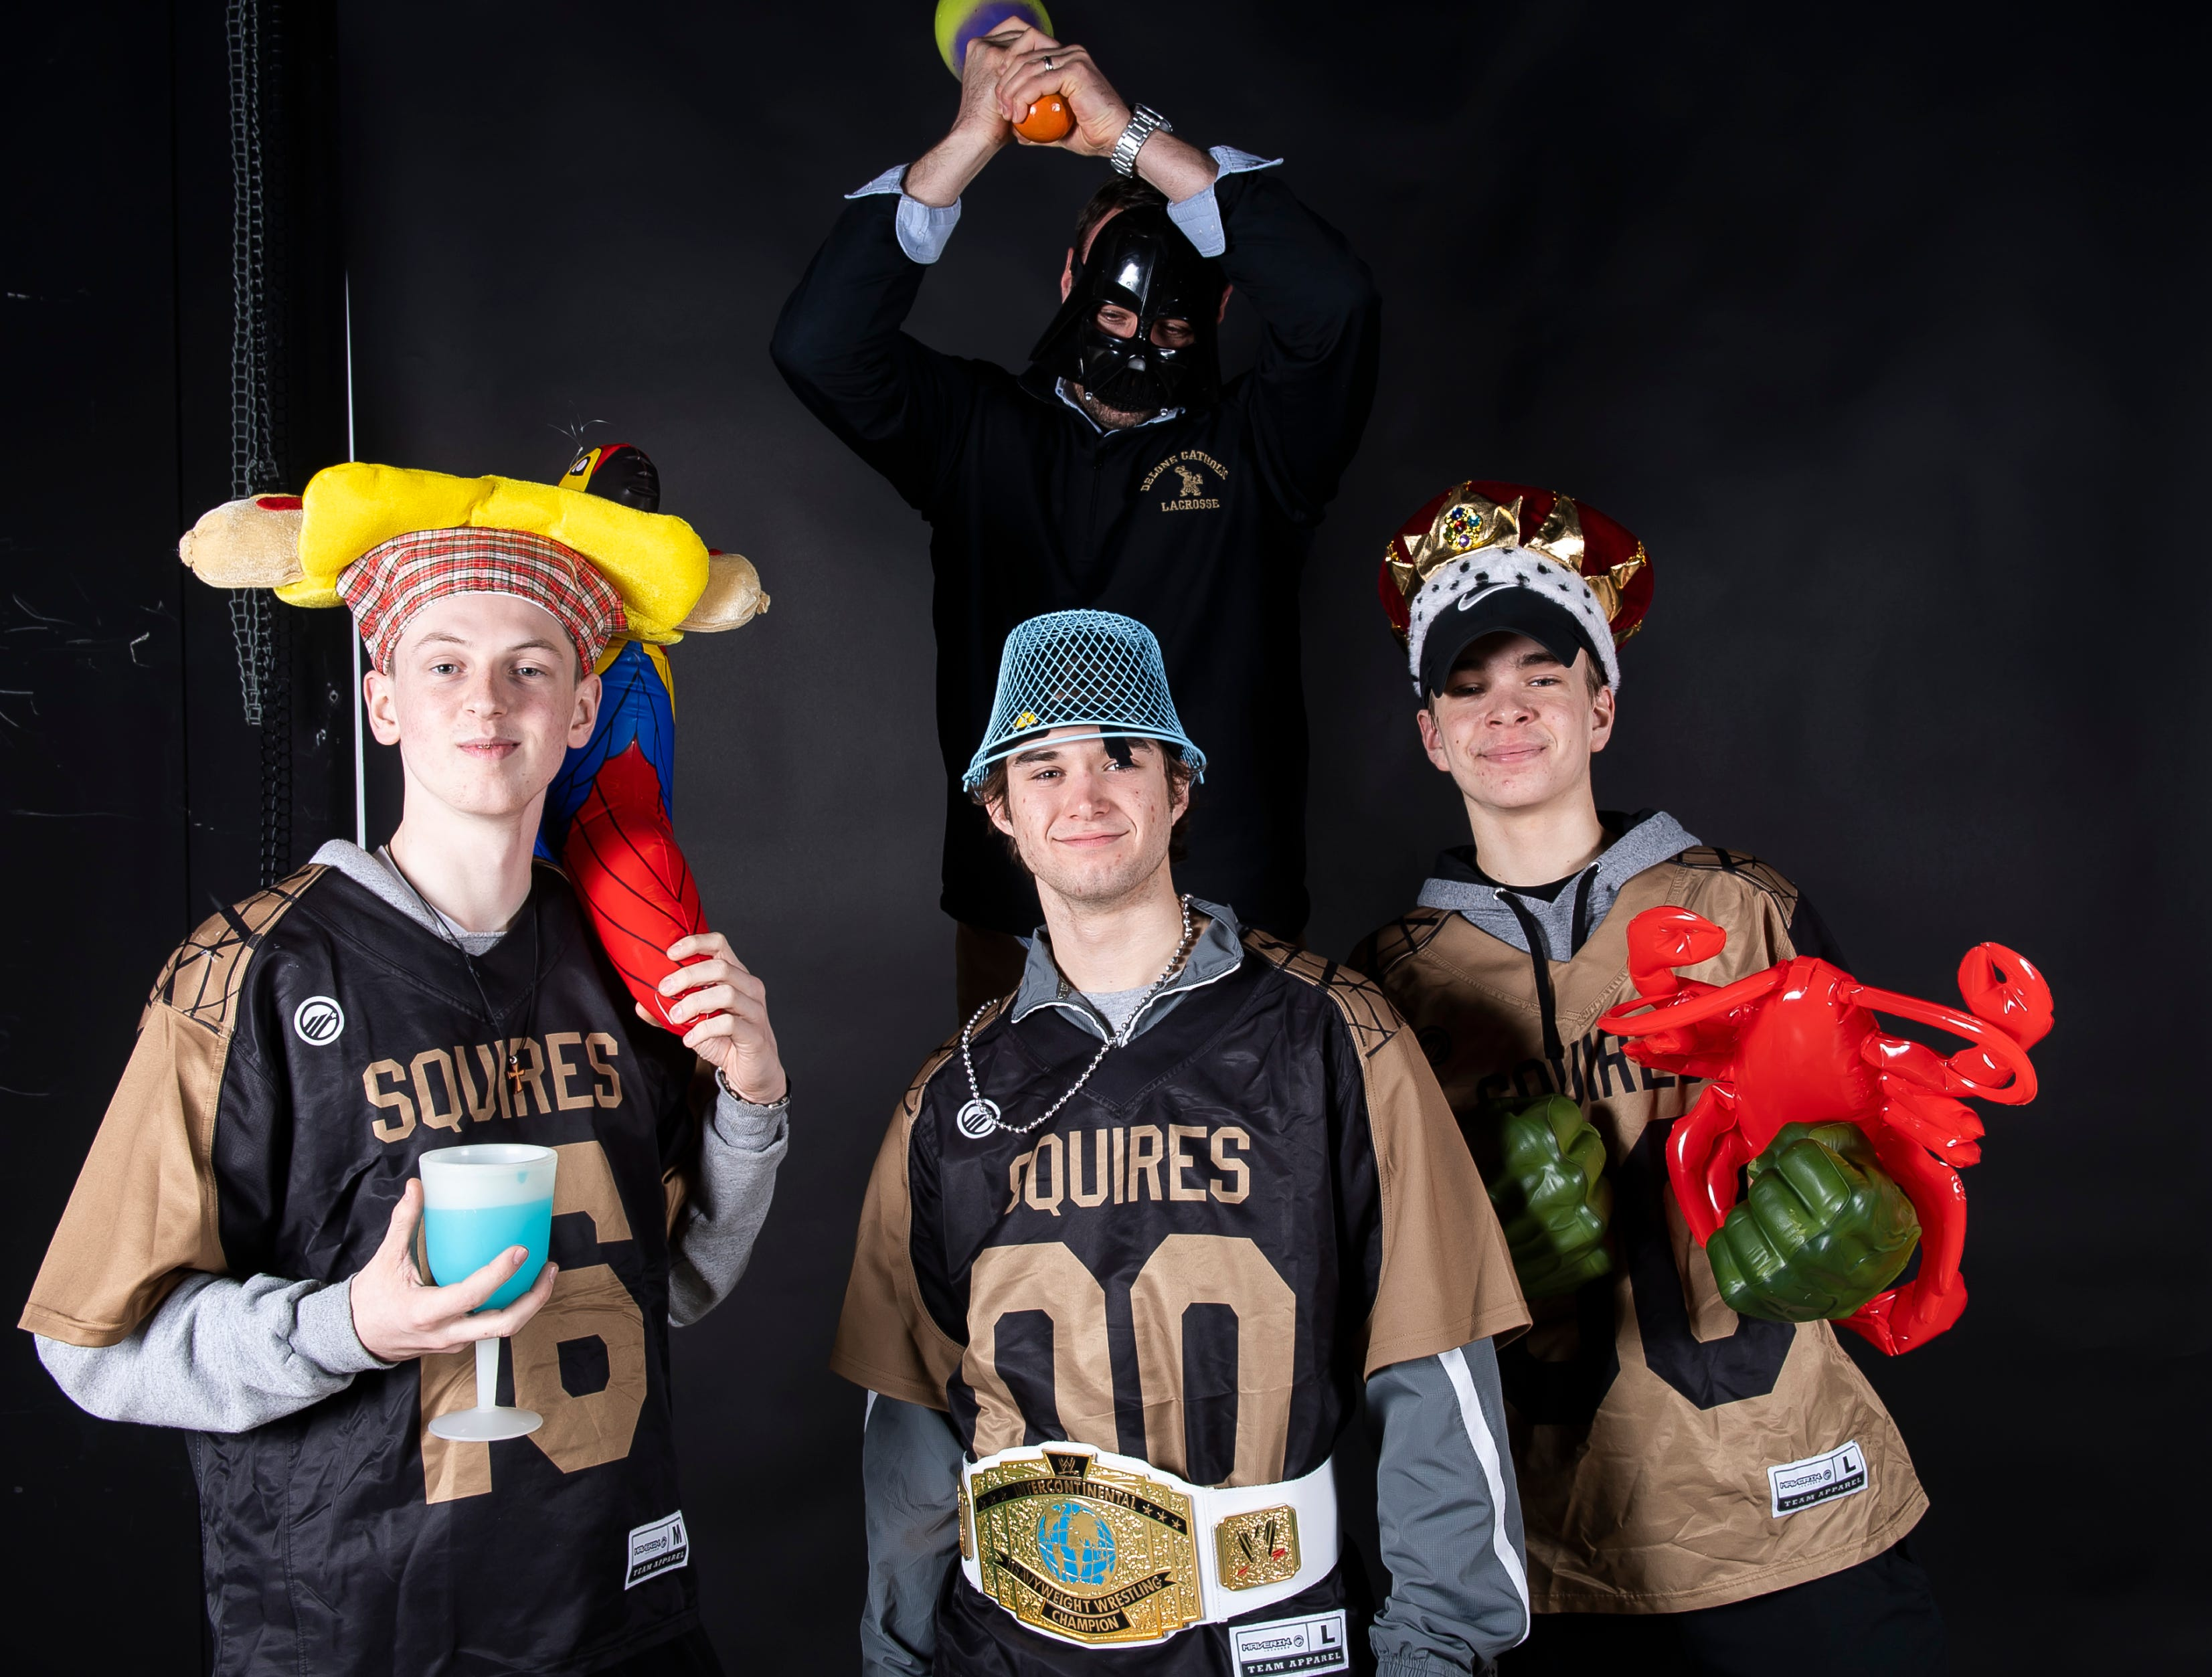 The Delone Catholic lacrosse team strike a pose in the GameTimePA photo booth during spring sports media day in York Sunday, March 10, 2019.